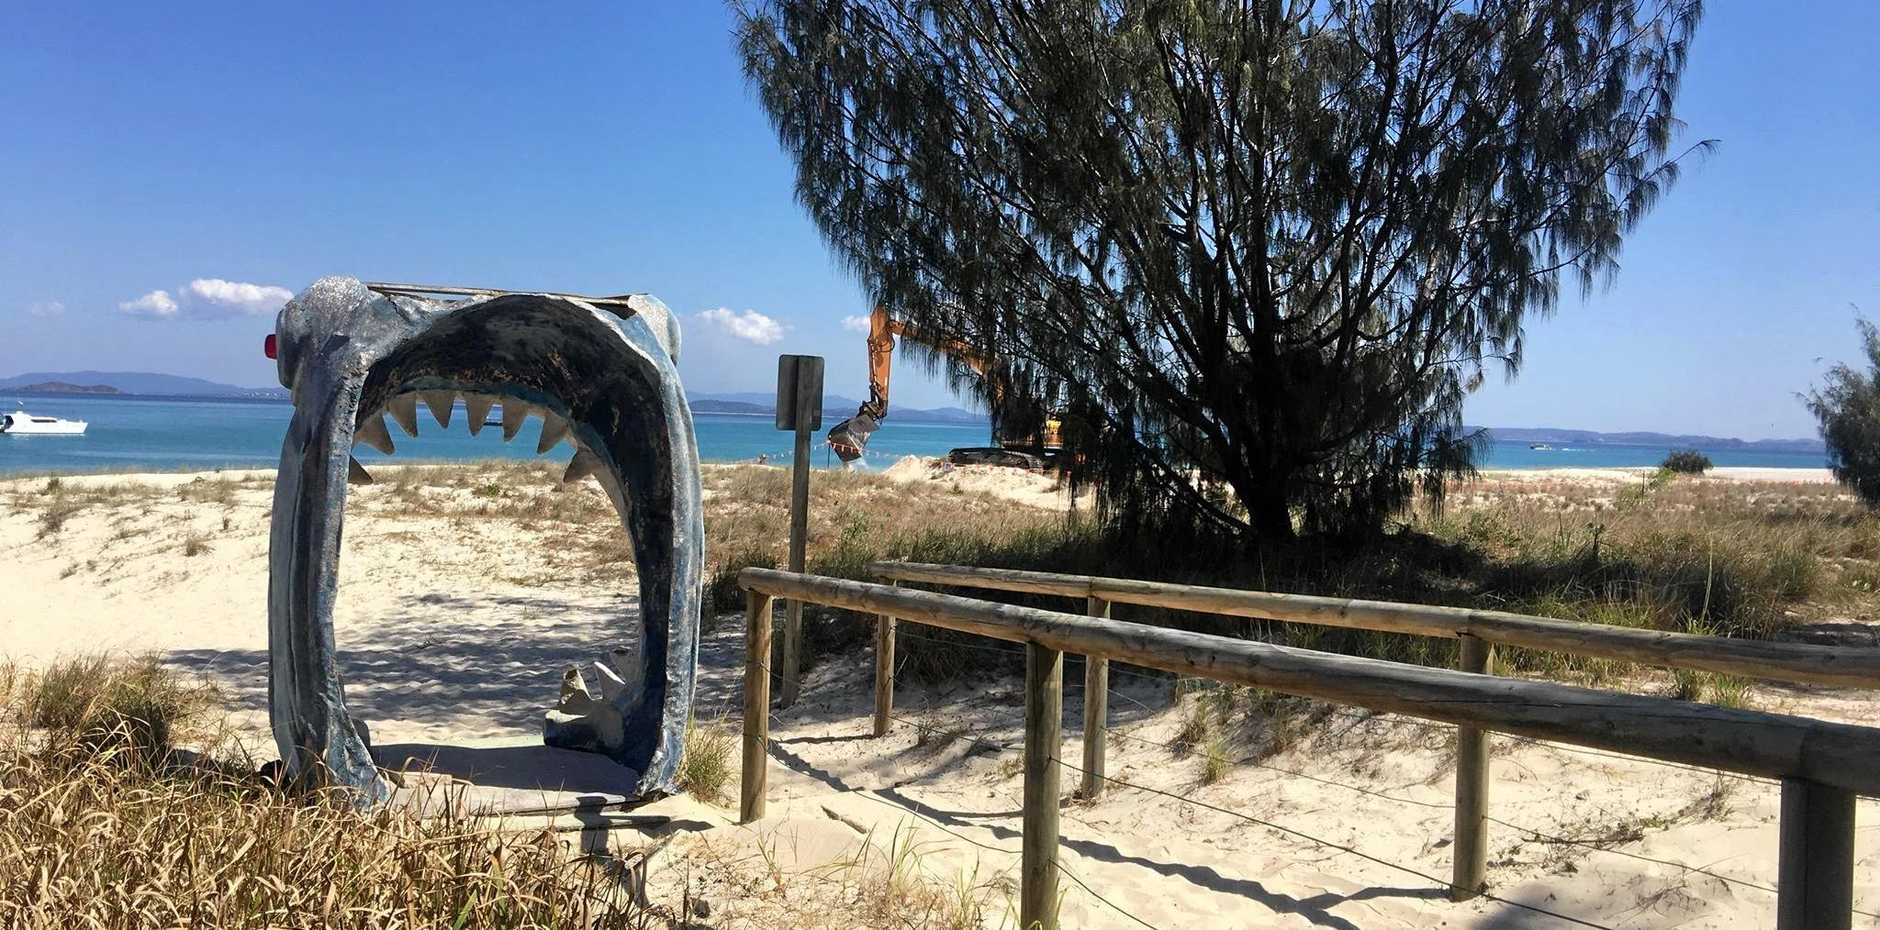 DUNES GOING: Sand dunes are being dug up close to shops and walkways on Fisherman's Beach on Great Keppel Island to use for sandbags on Putney Beach to save Great Keppel Island Hideaway and Putney Beach.